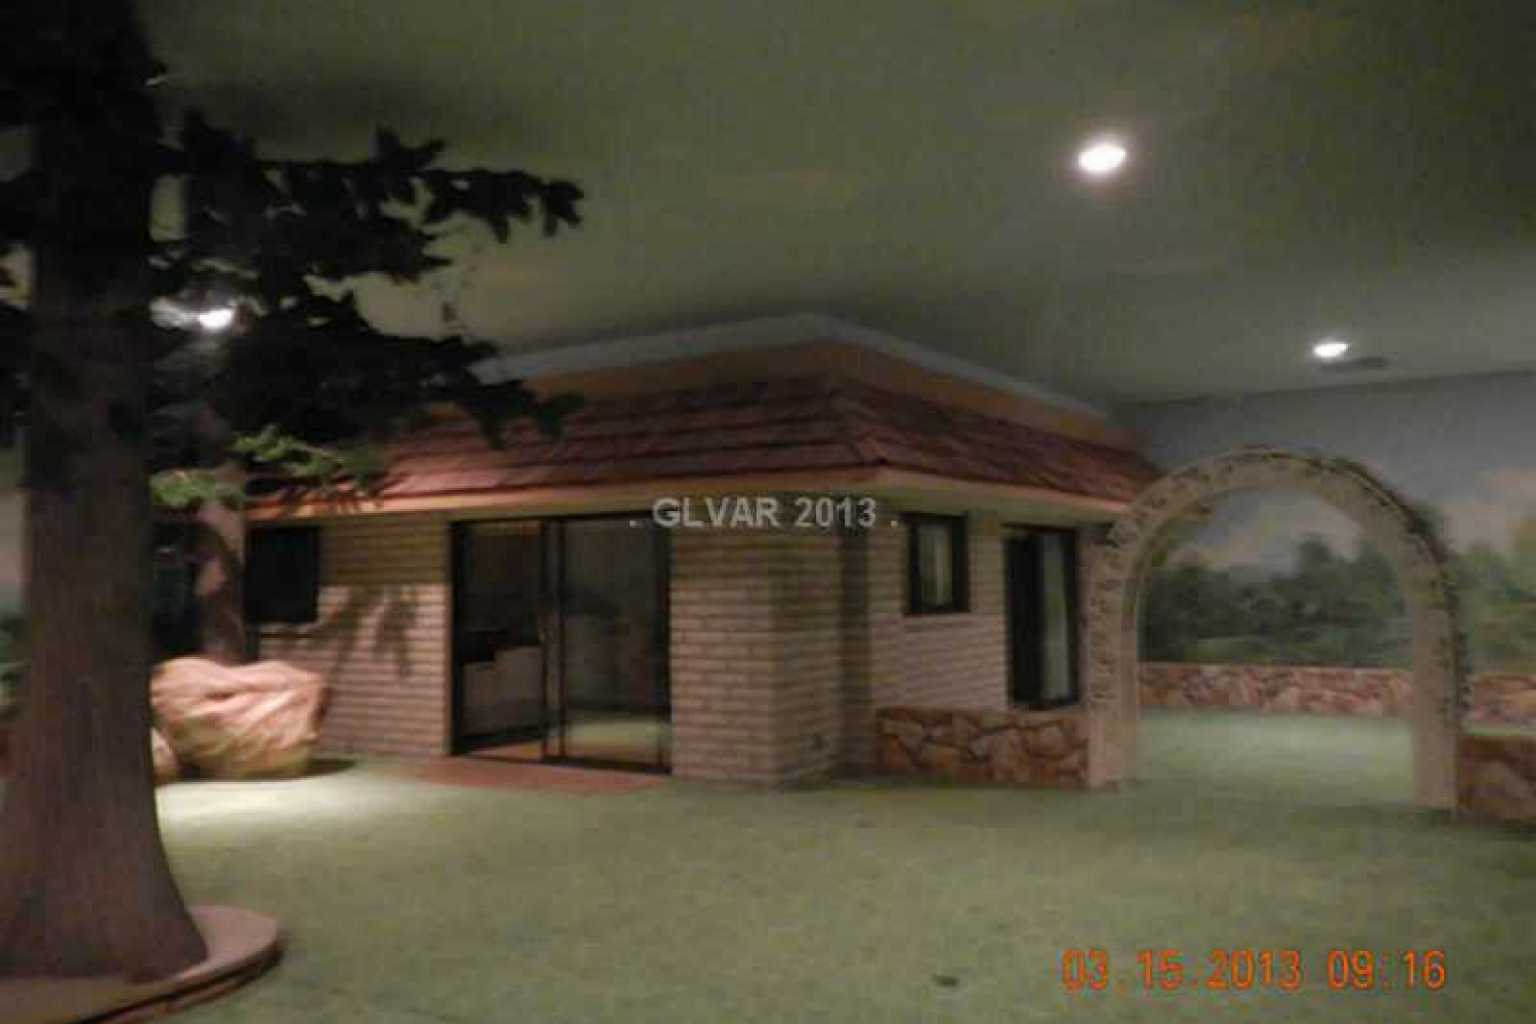 Houses Built Underground Underground 1970s Home Built 26 Feet Beneath Las Vegas Makes A